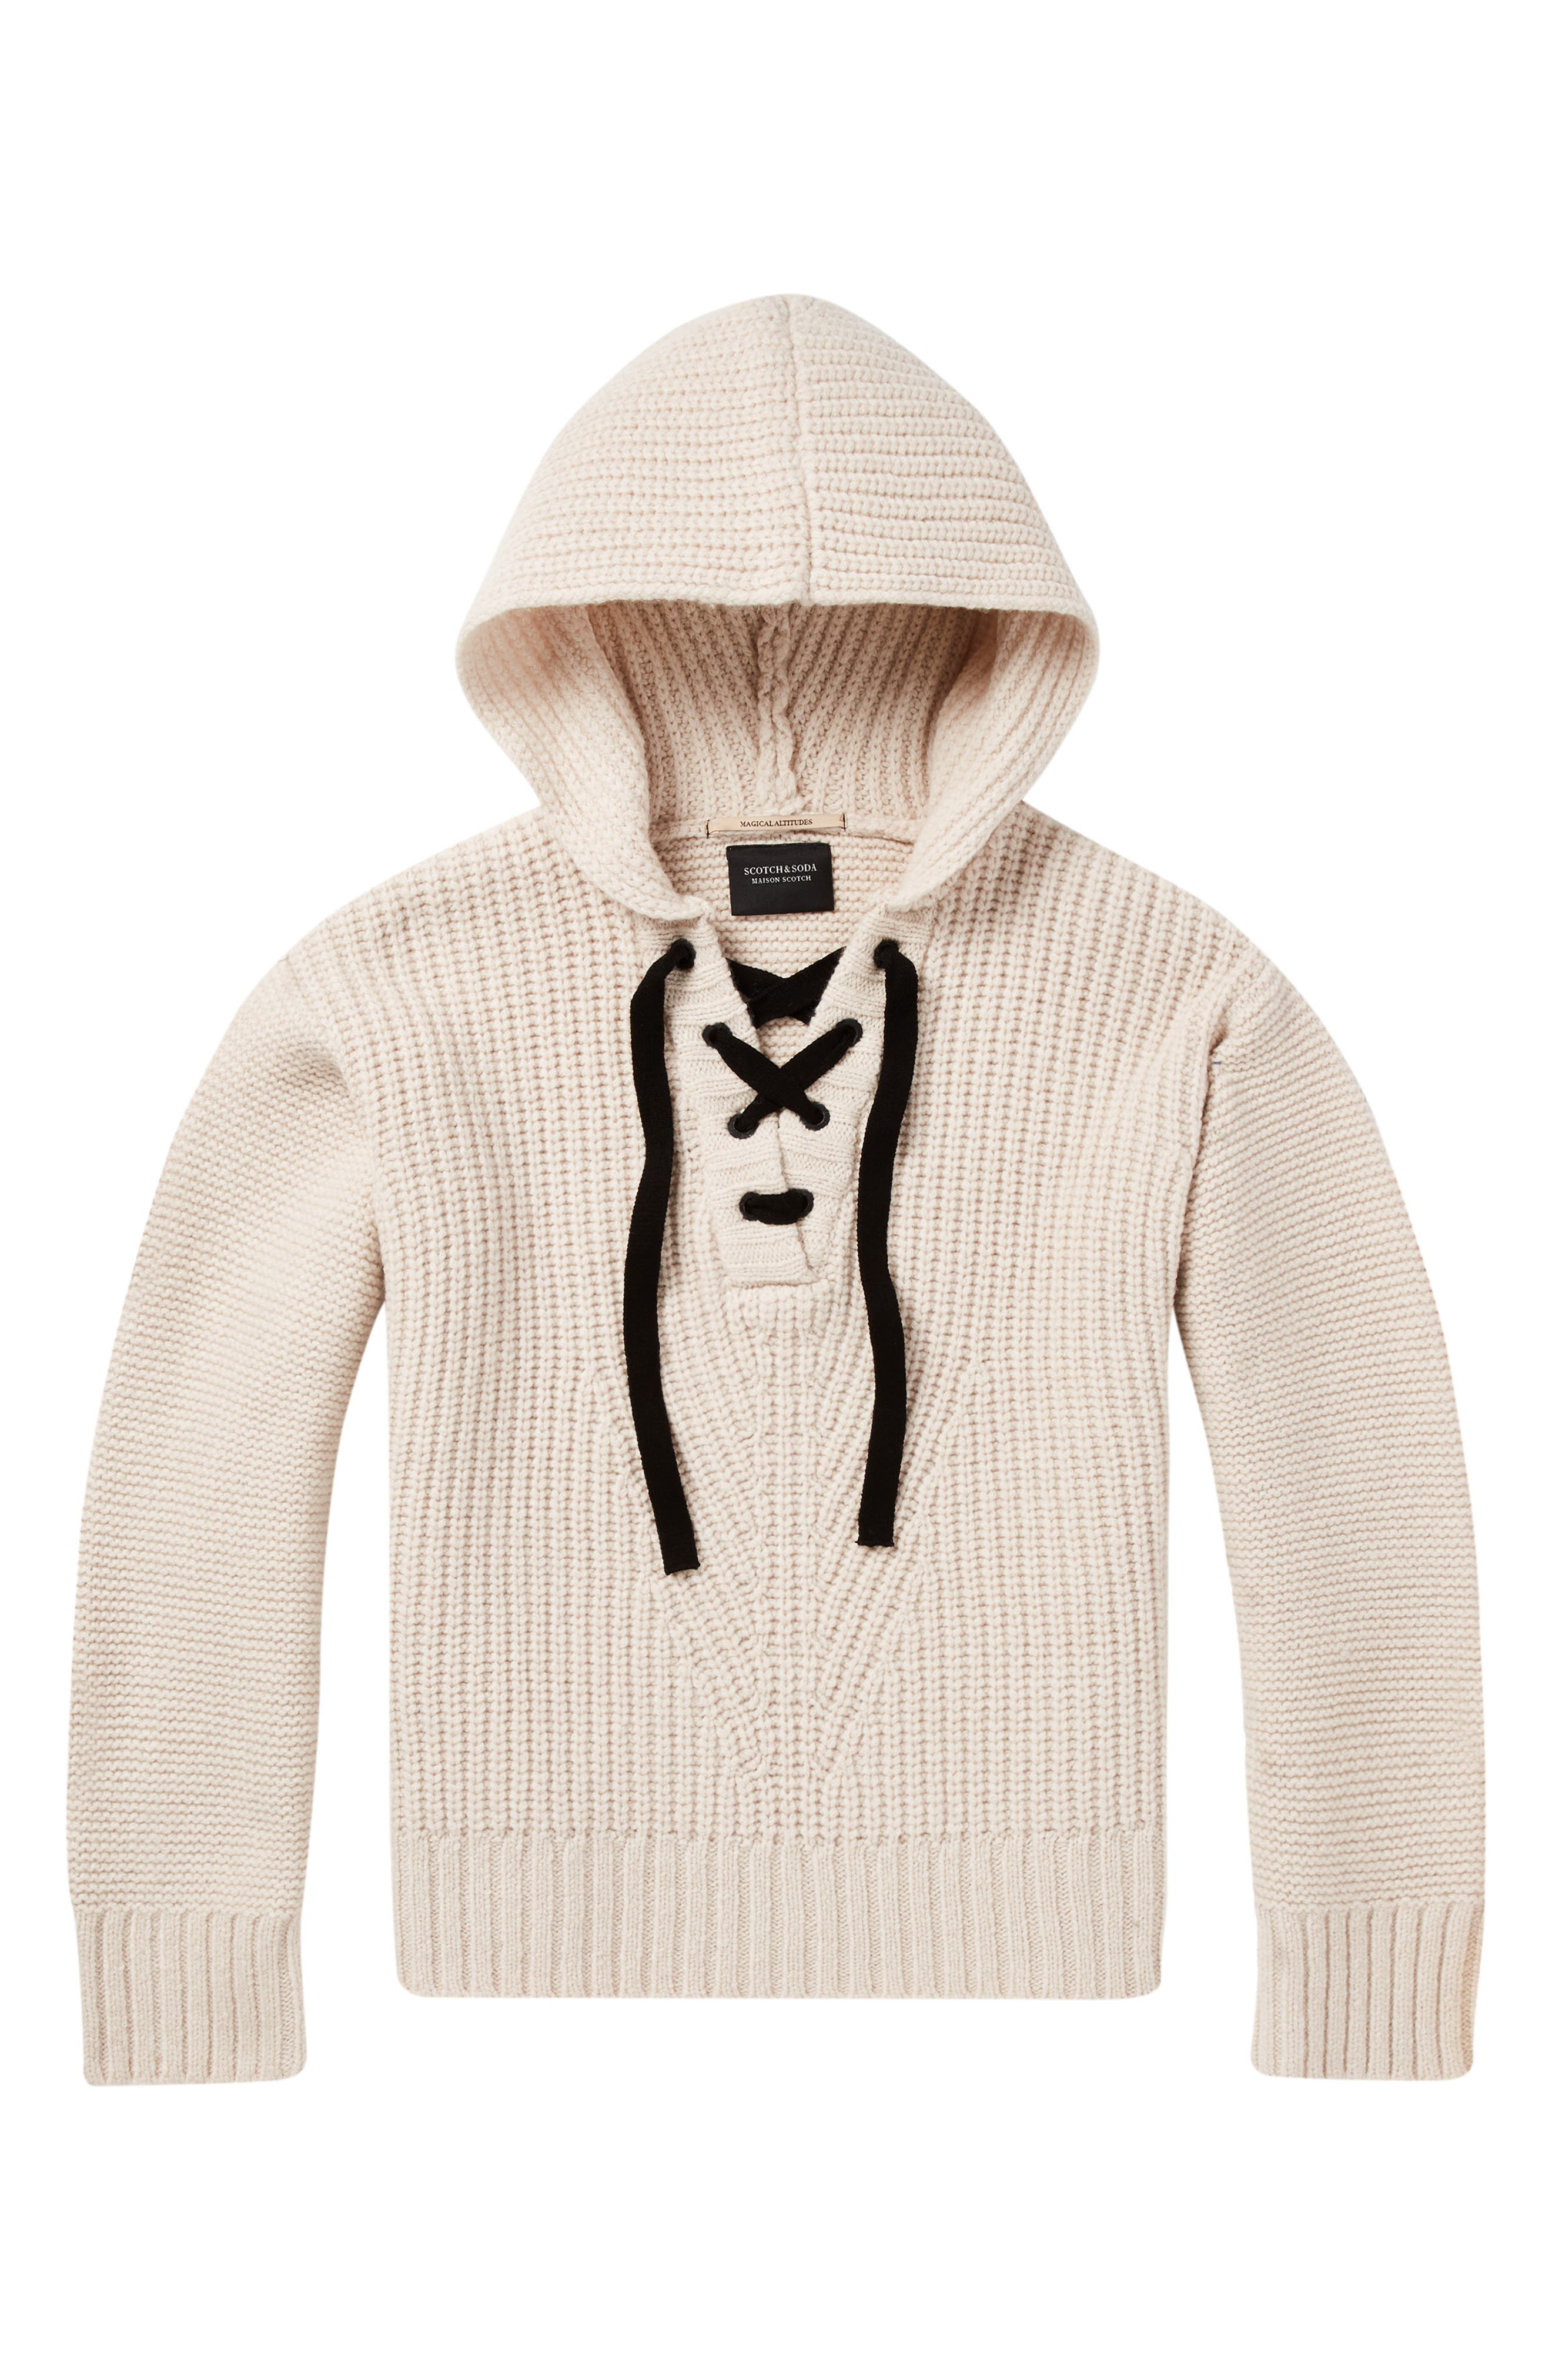 Lace-Up Knit Hooded Sweater,                             Alternate thumbnail 4, color,                             CREAM